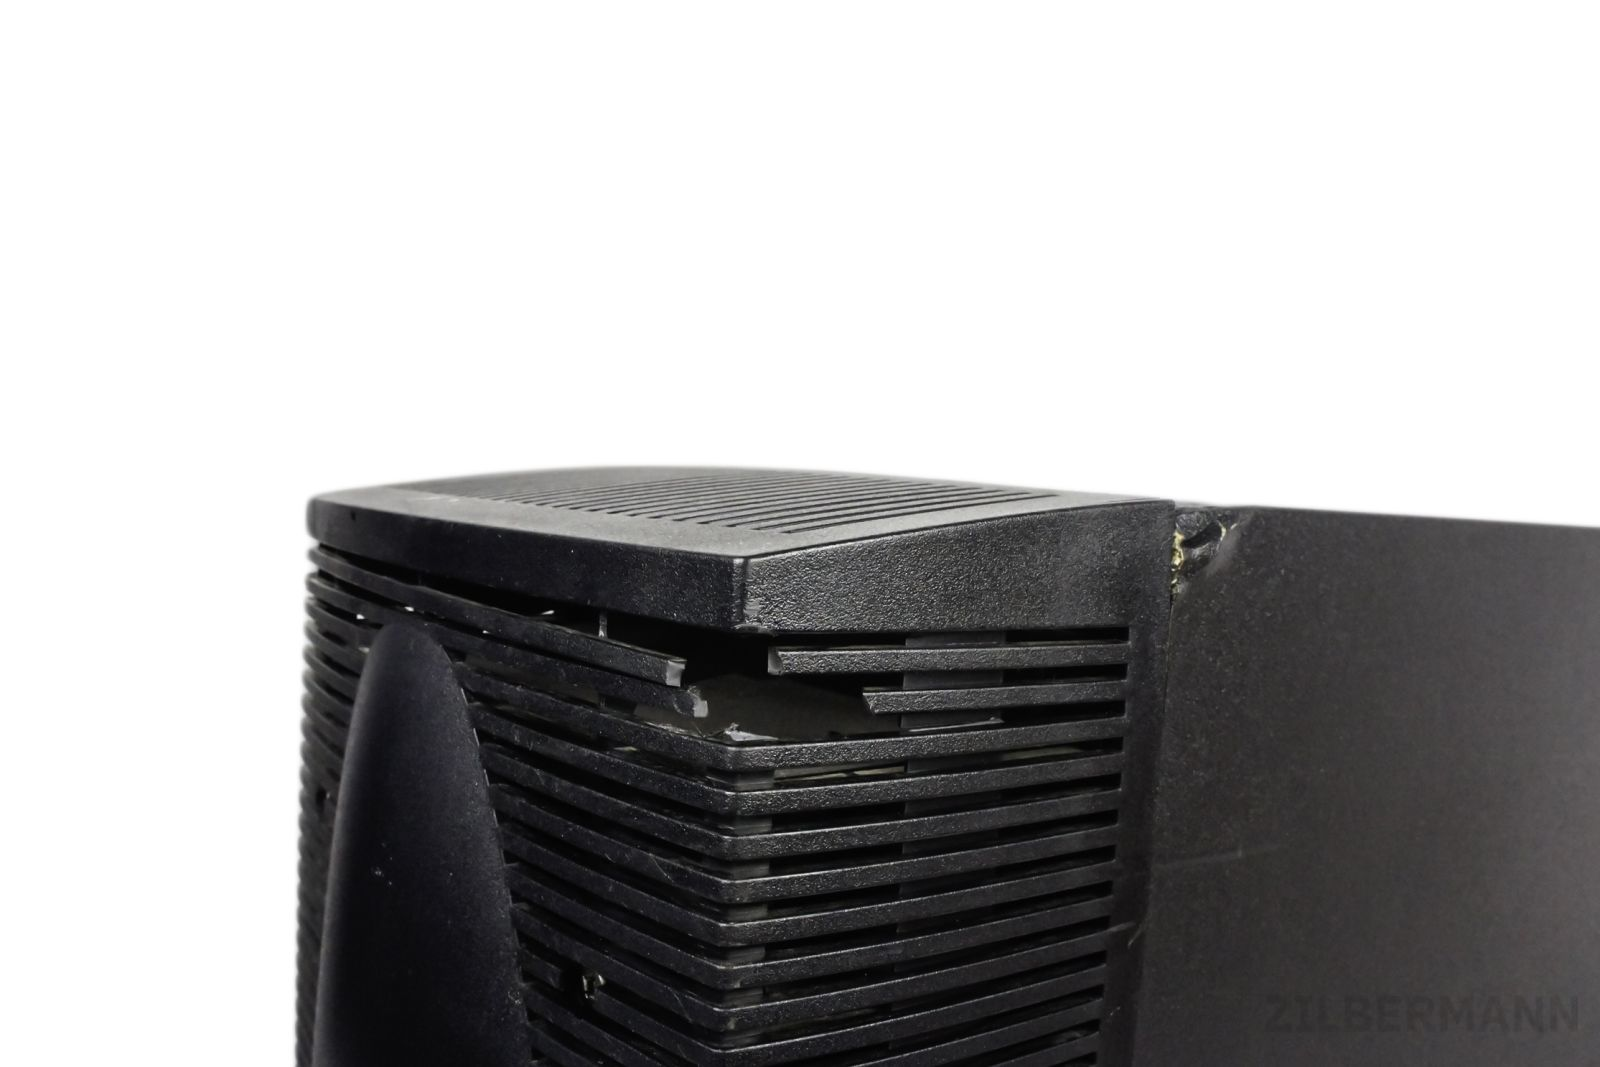 Bose_Lifestyle_28_PS28_Series_II_Powered_Subwoofer_Aktiv_04